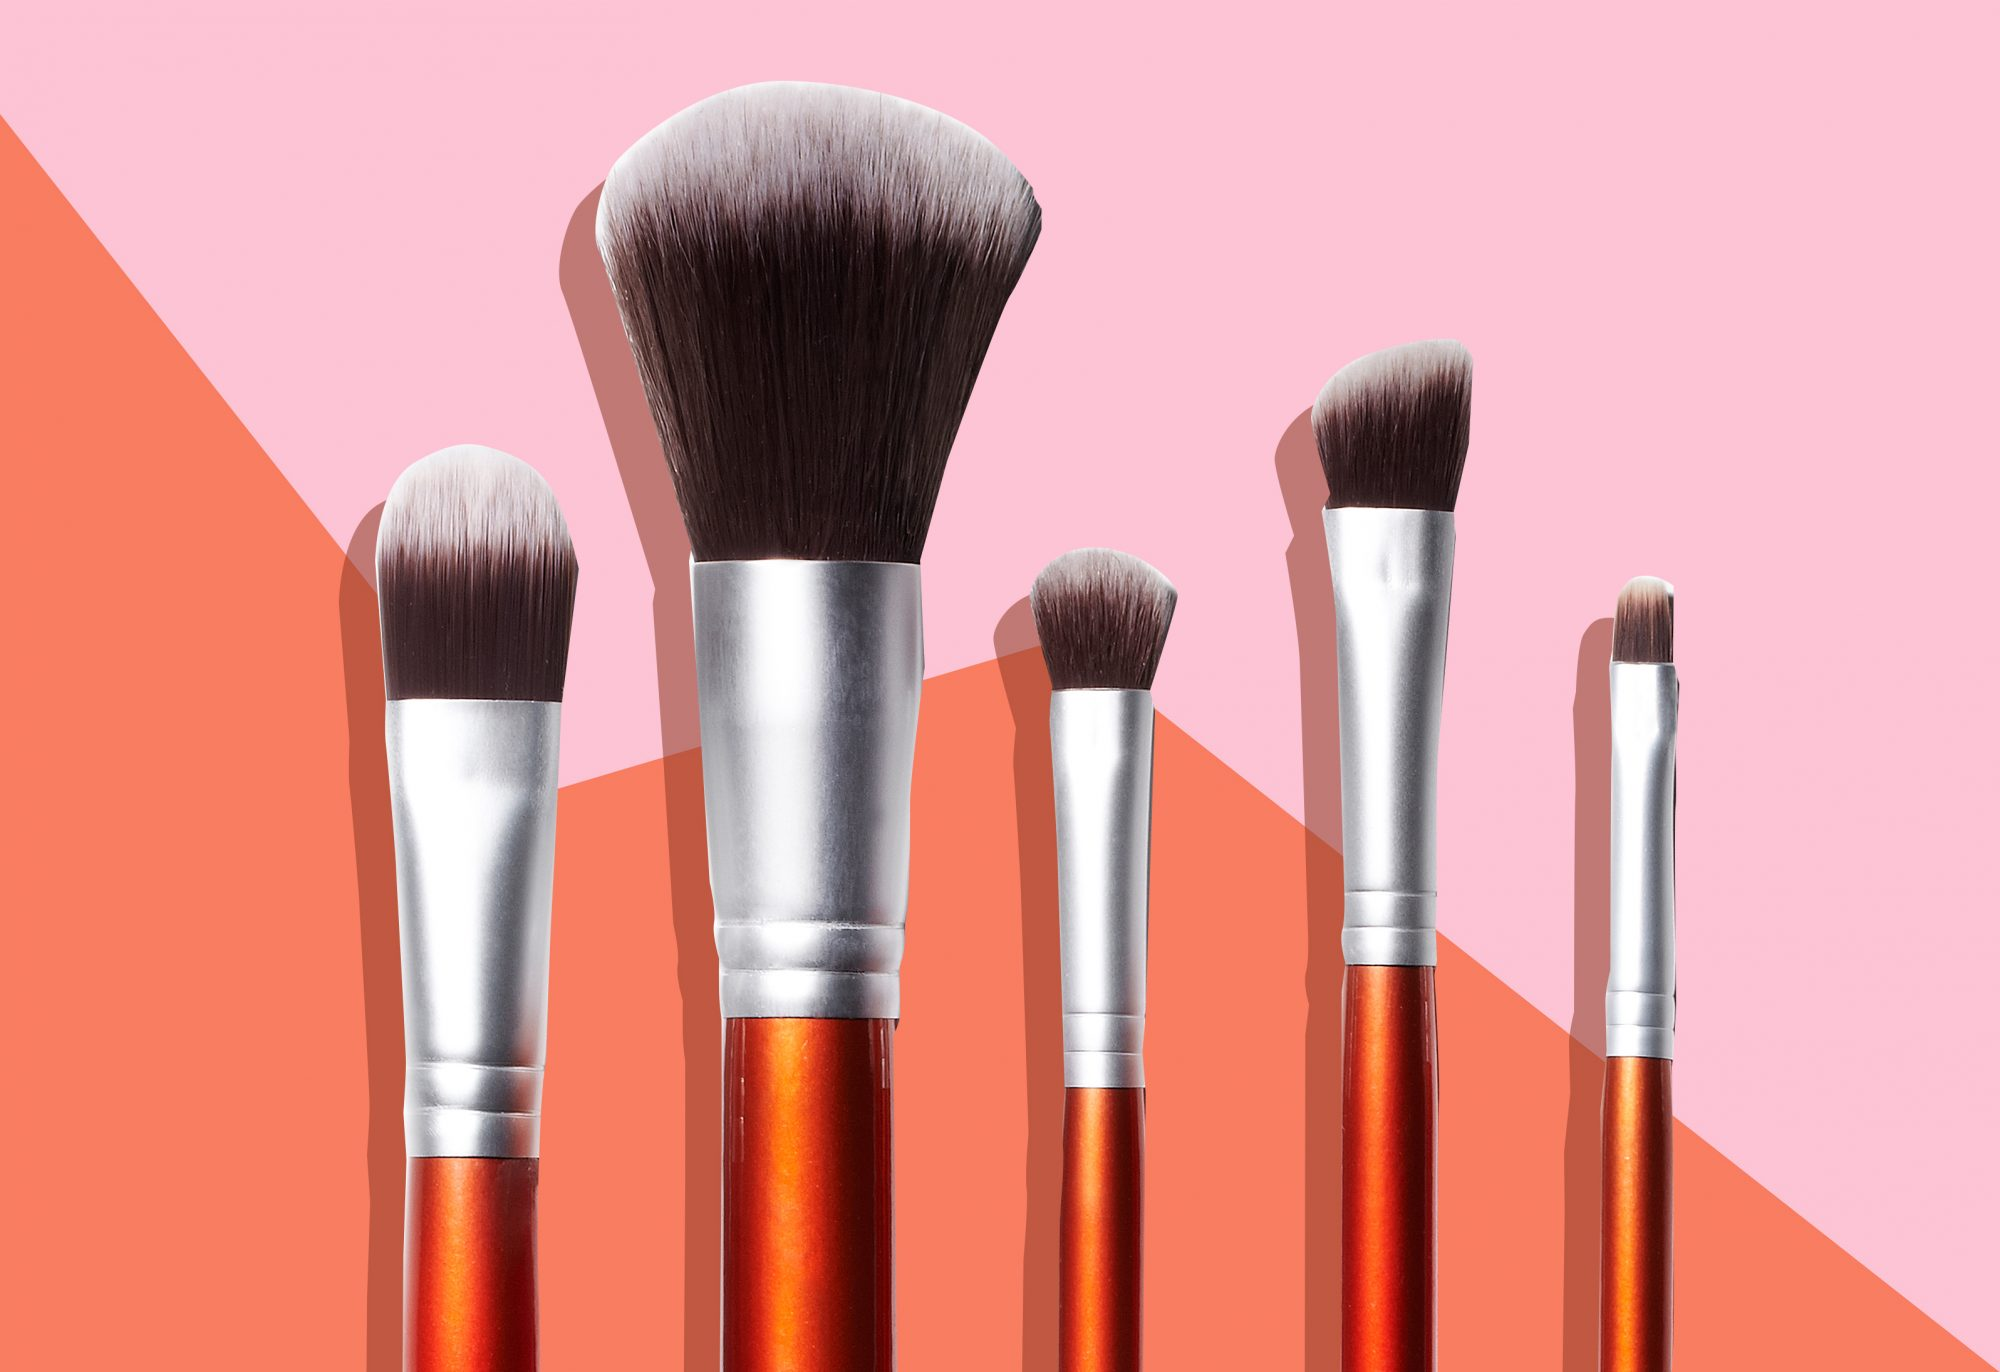 Cleaning Your Makeup Brushes Just Got Easier With This Genius $4